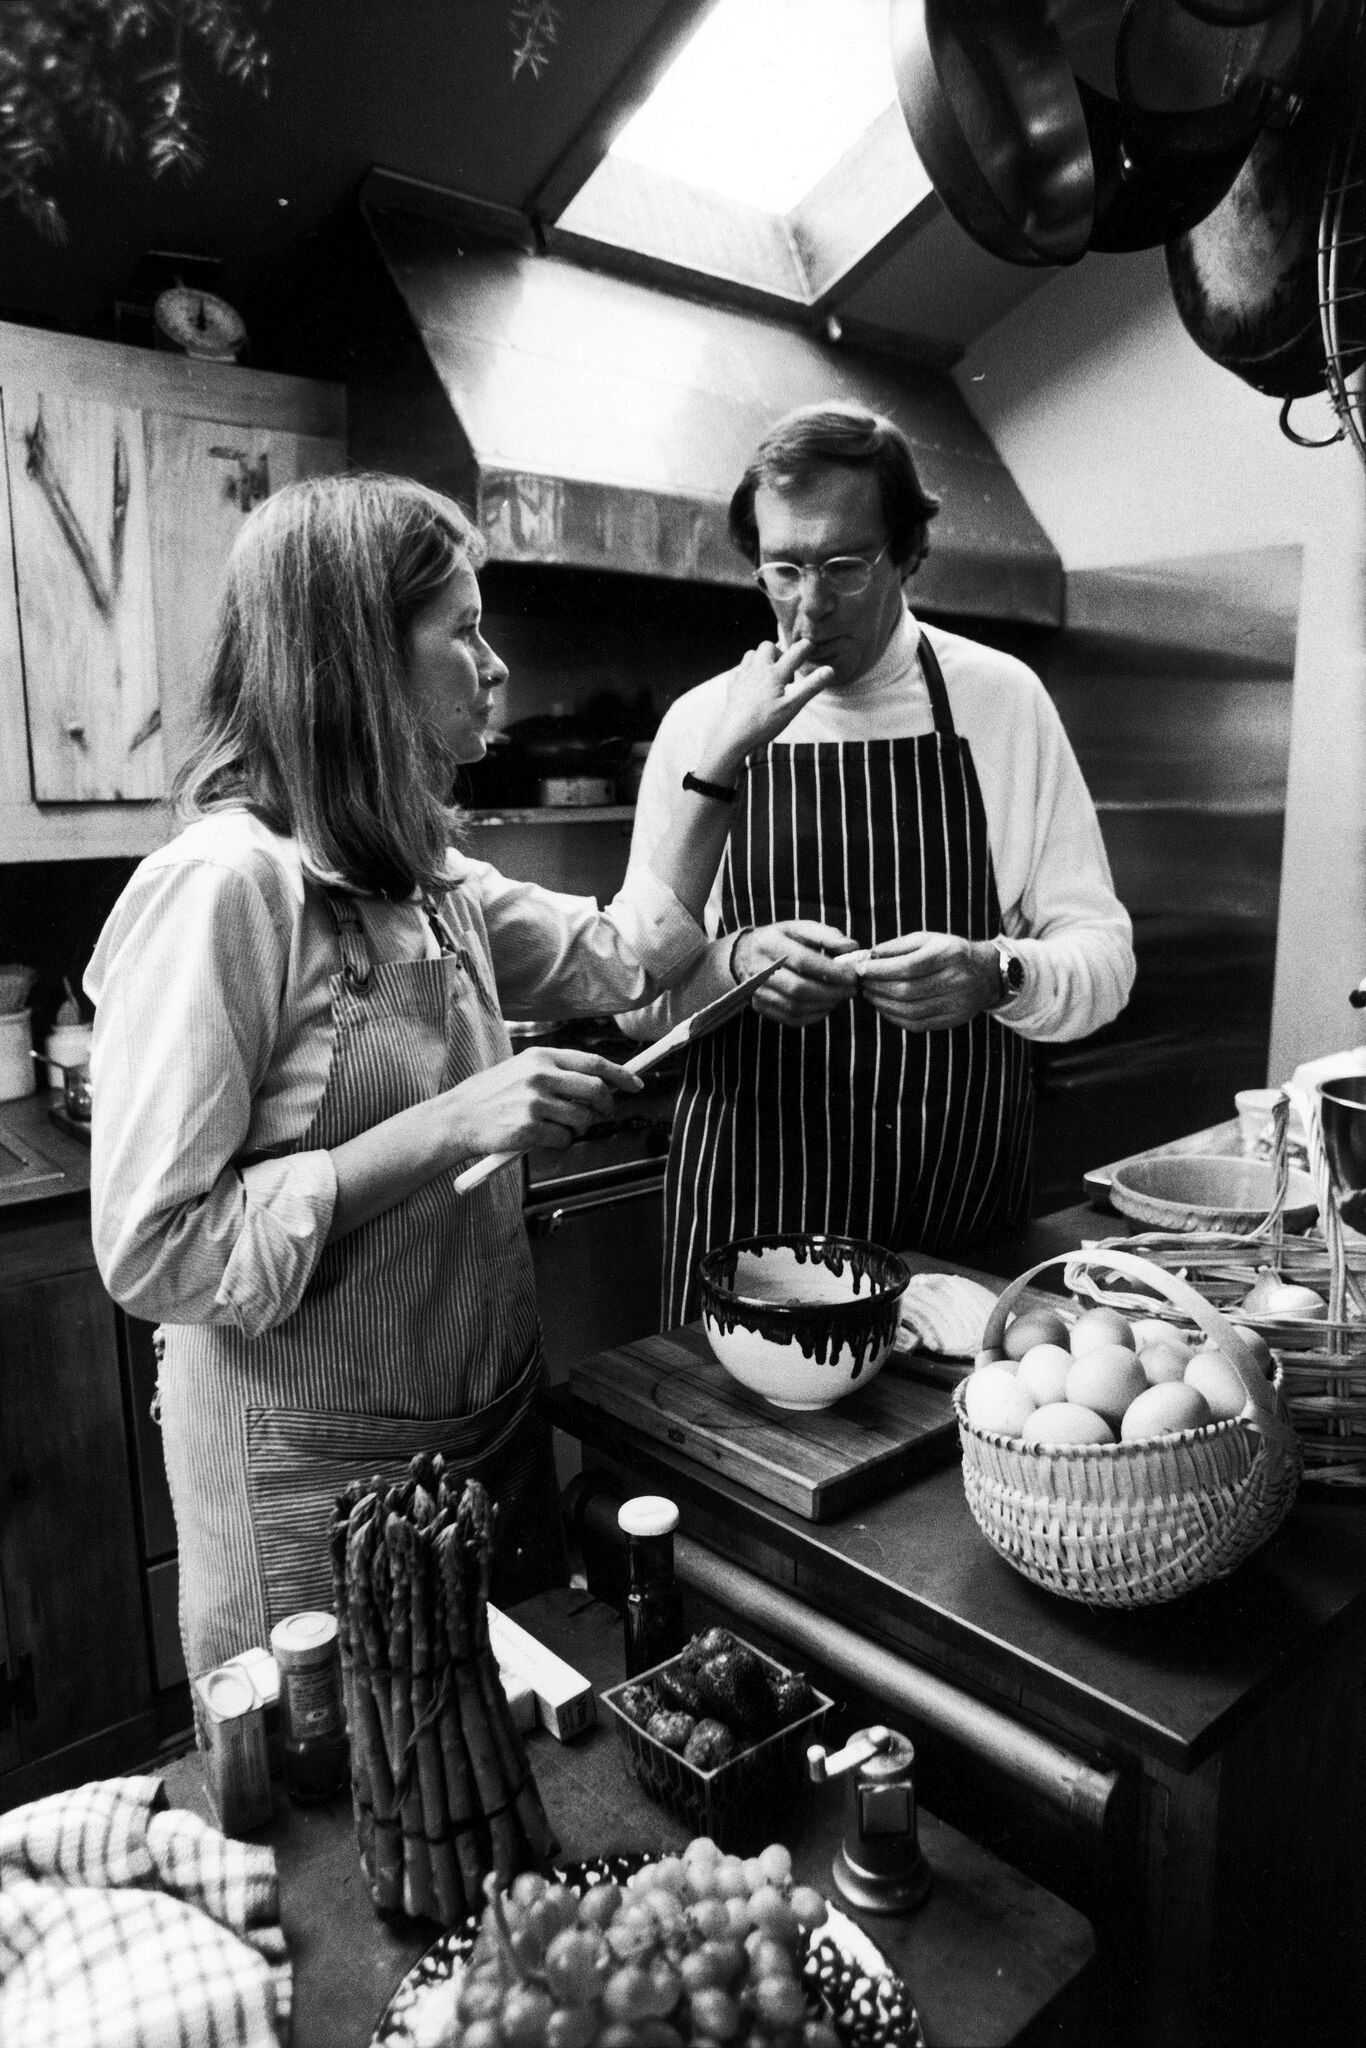 Caterer Martha Stewart and husband, publisher Andy Stewart, baking in their kitchen | Getty Images